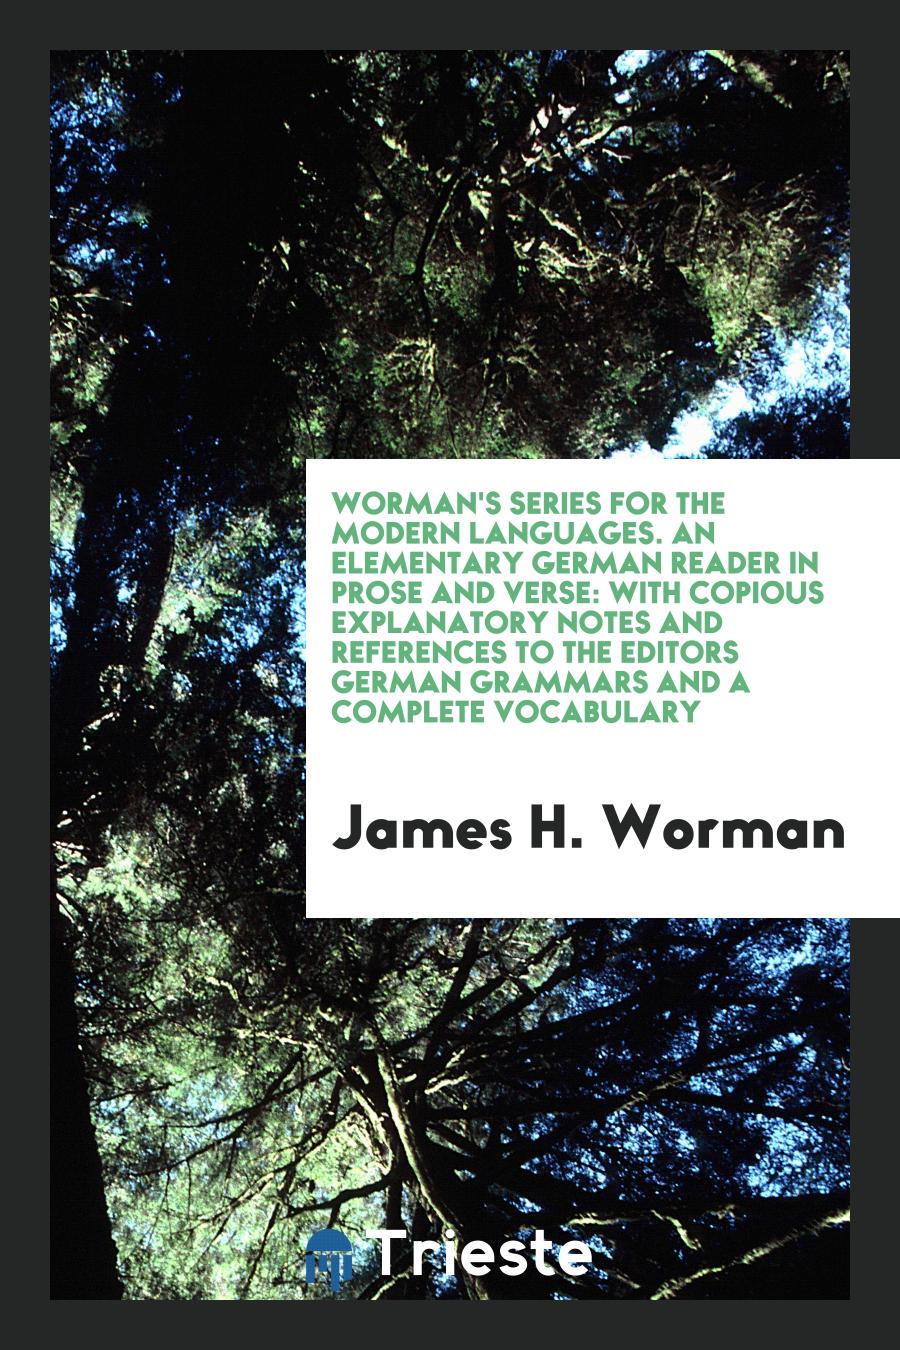 Worman's Series for the Modern Languages. An Elementary German Reader in Prose and Verse: With Copious Explanatory Notes and References to the Editors German Grammars and a Complete Vocabulary